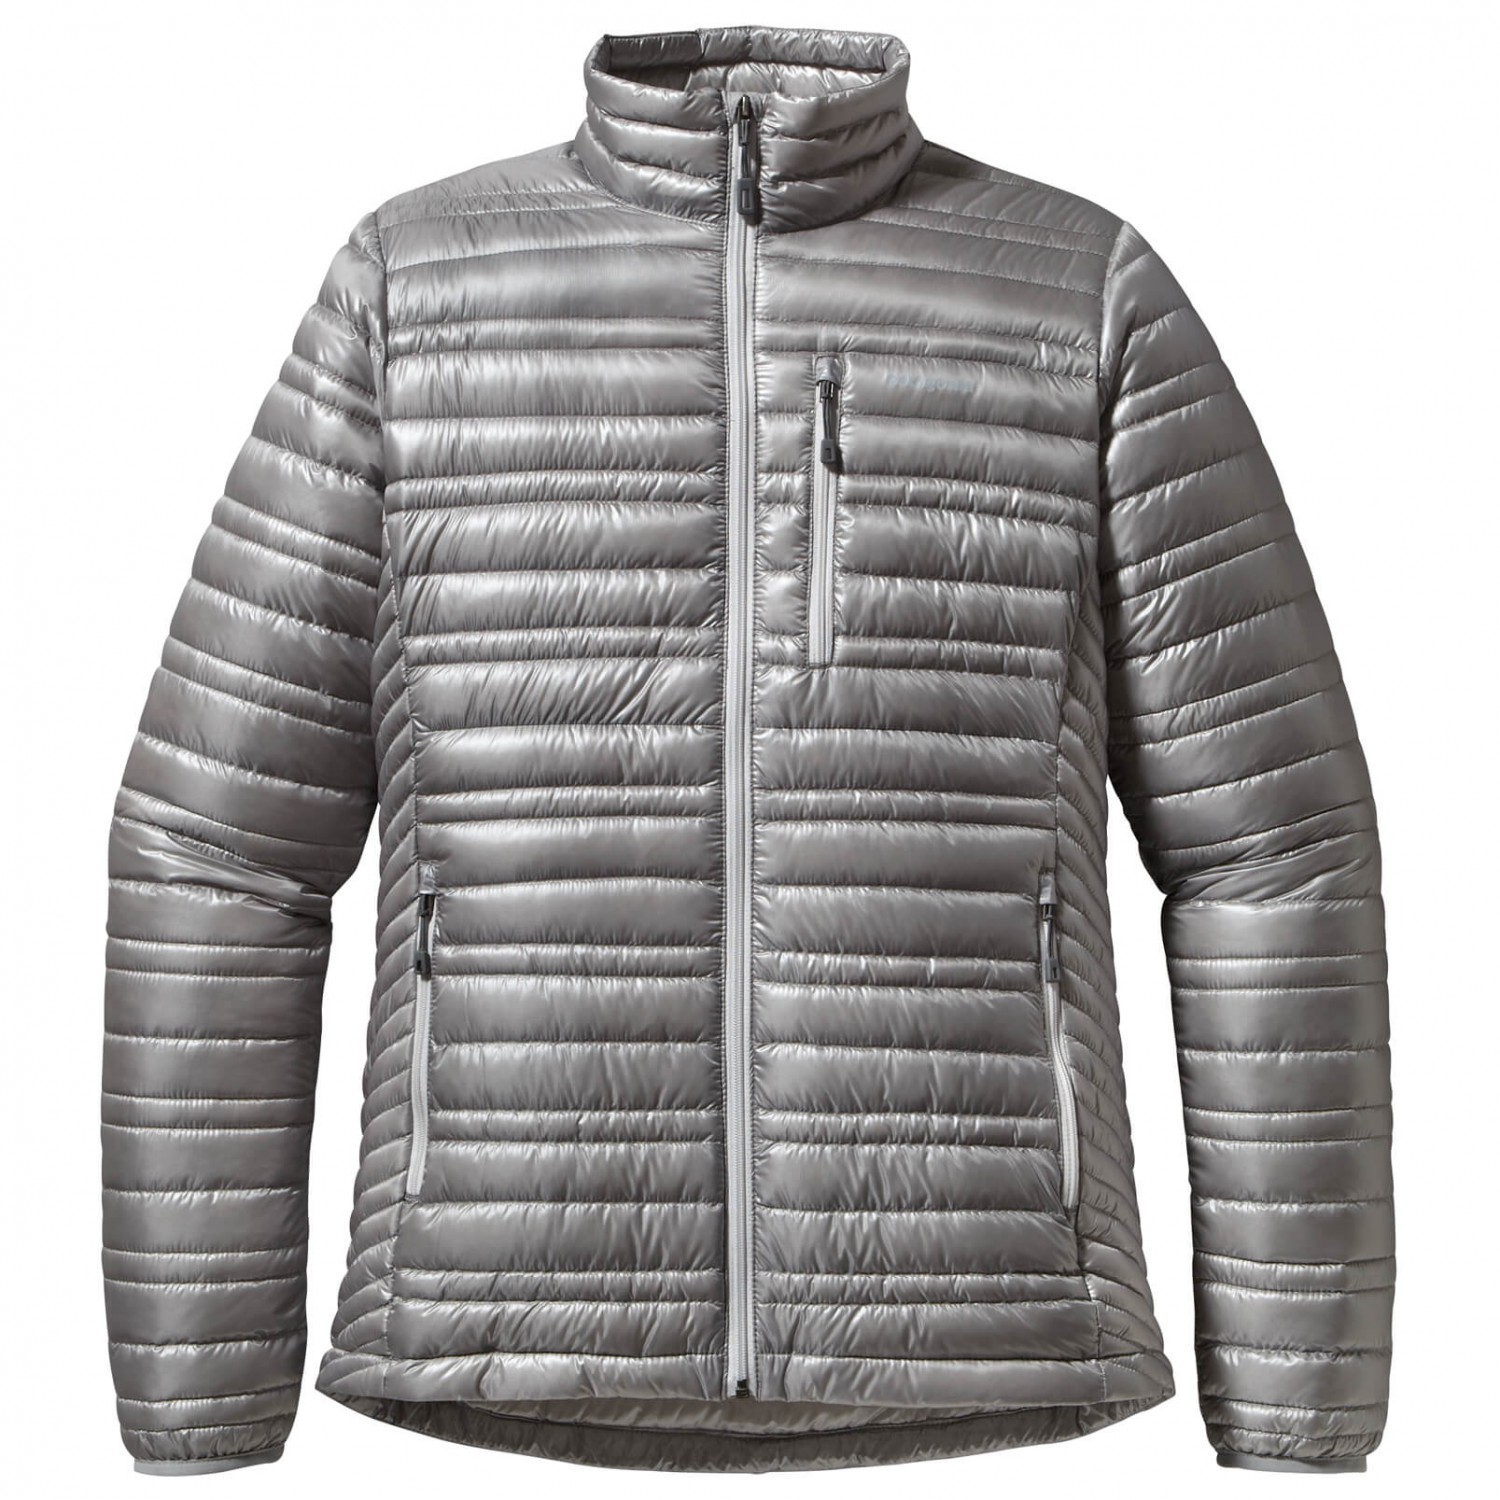 Mujer Patagonia Ws Ultralight Down Chaqueta